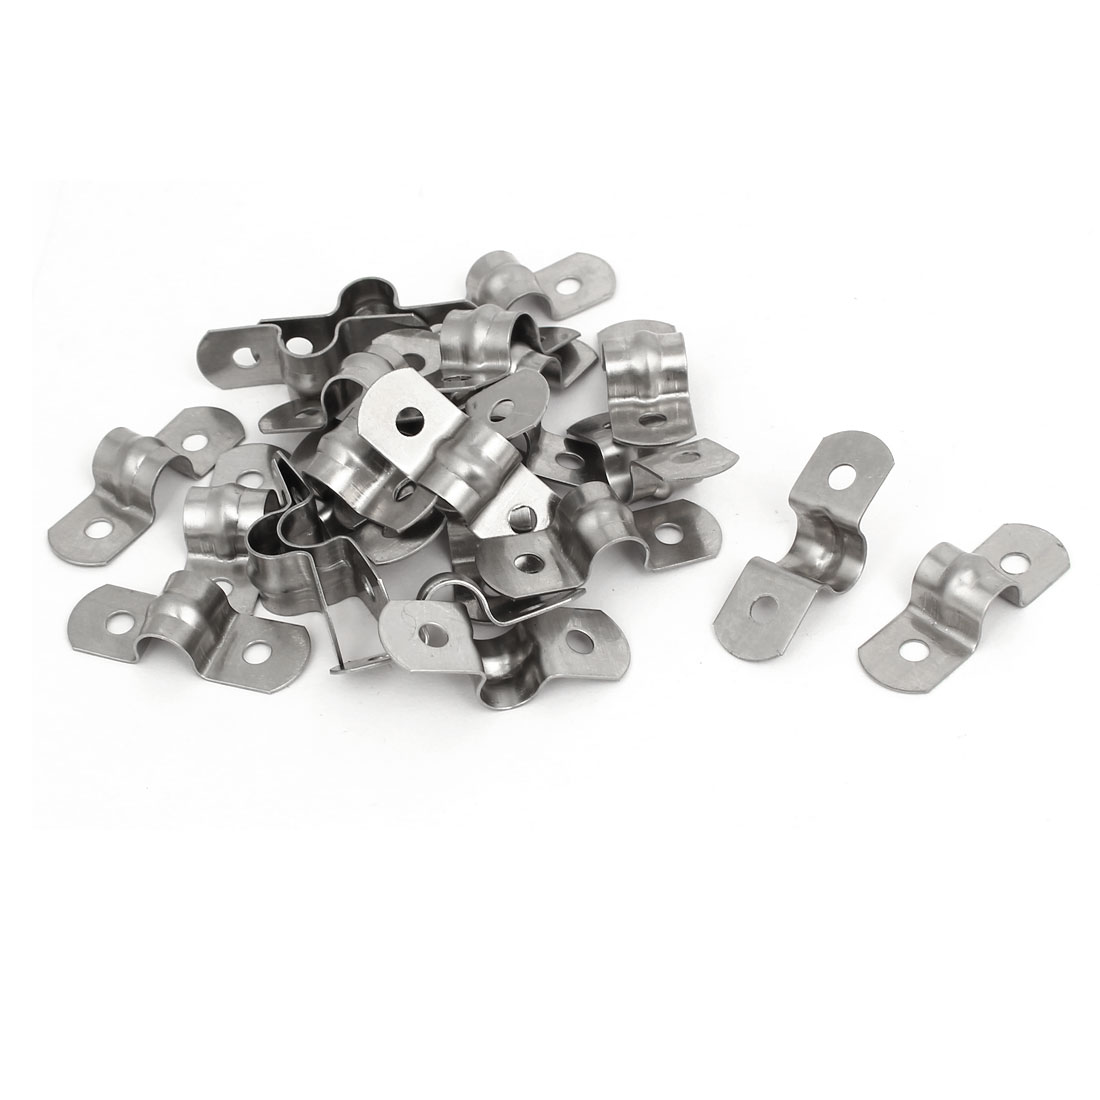 M8 304 Stainless Steel Two Hole Pipe Straps Tension Tube Clip Clamp 25pcs